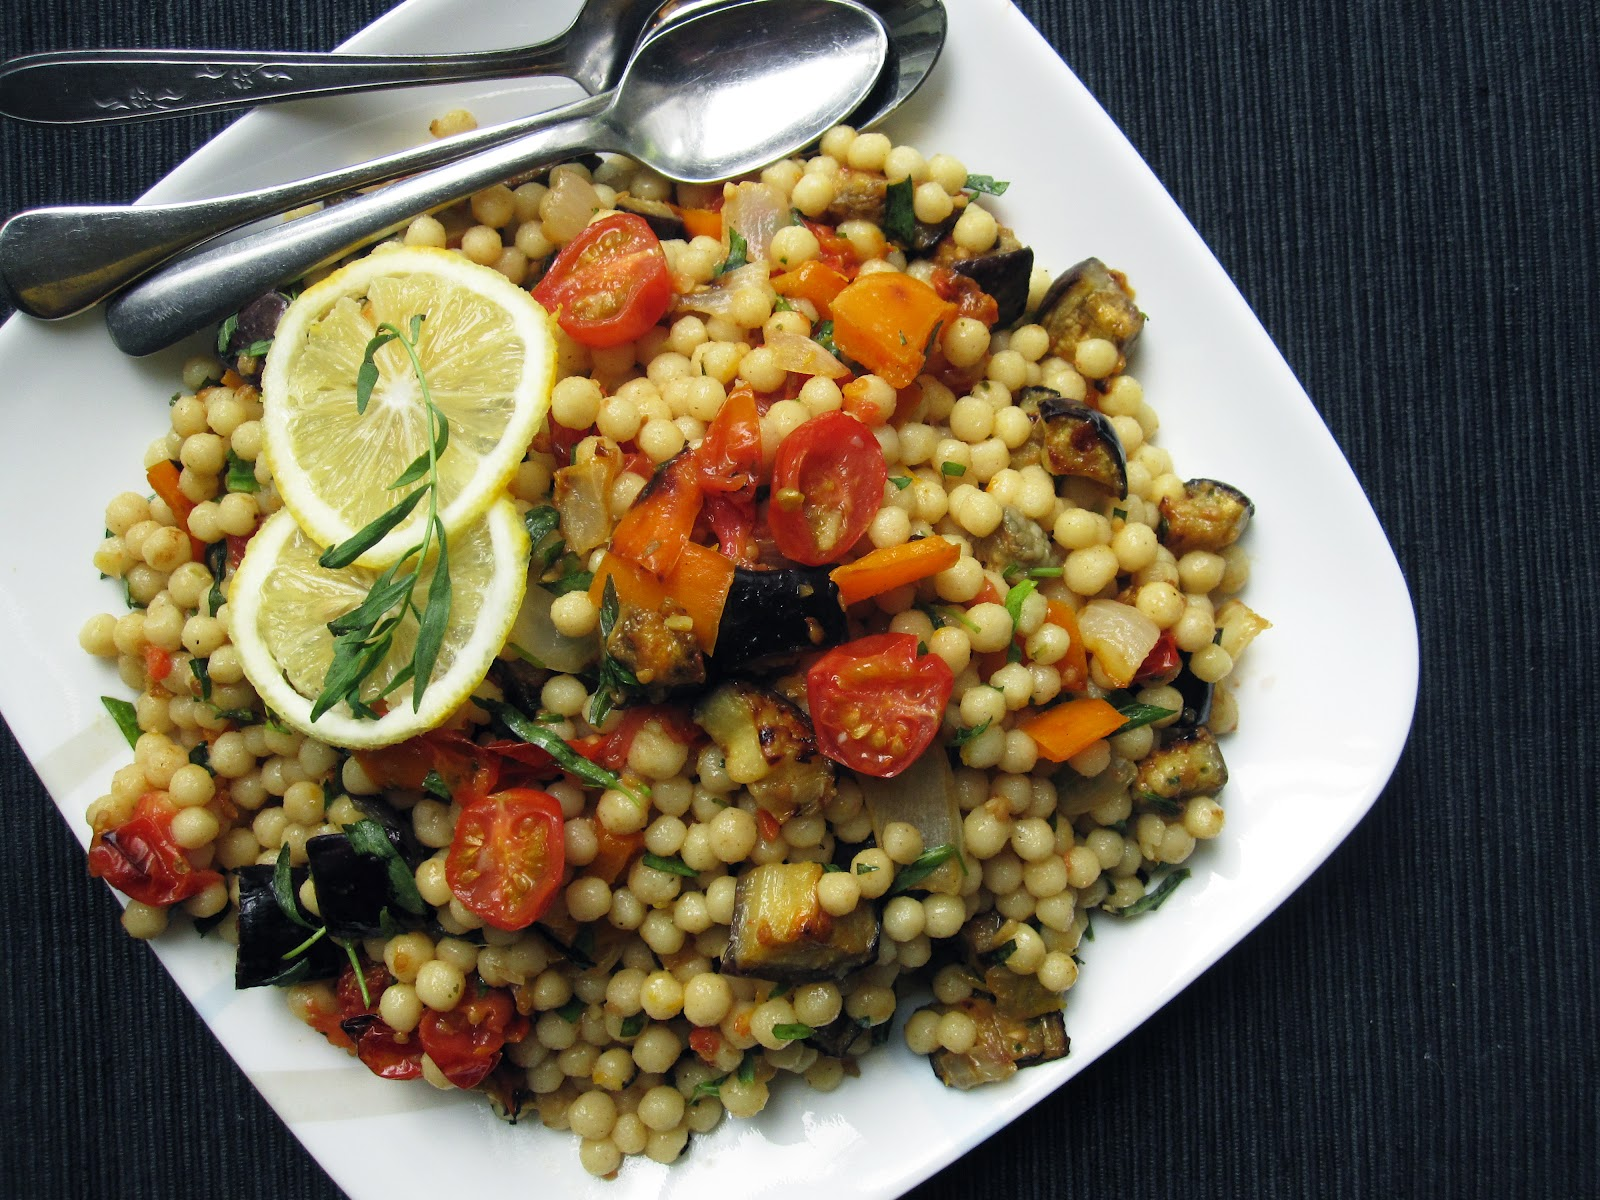 Edible biology: Israeli couscous with roasted summer vegetables